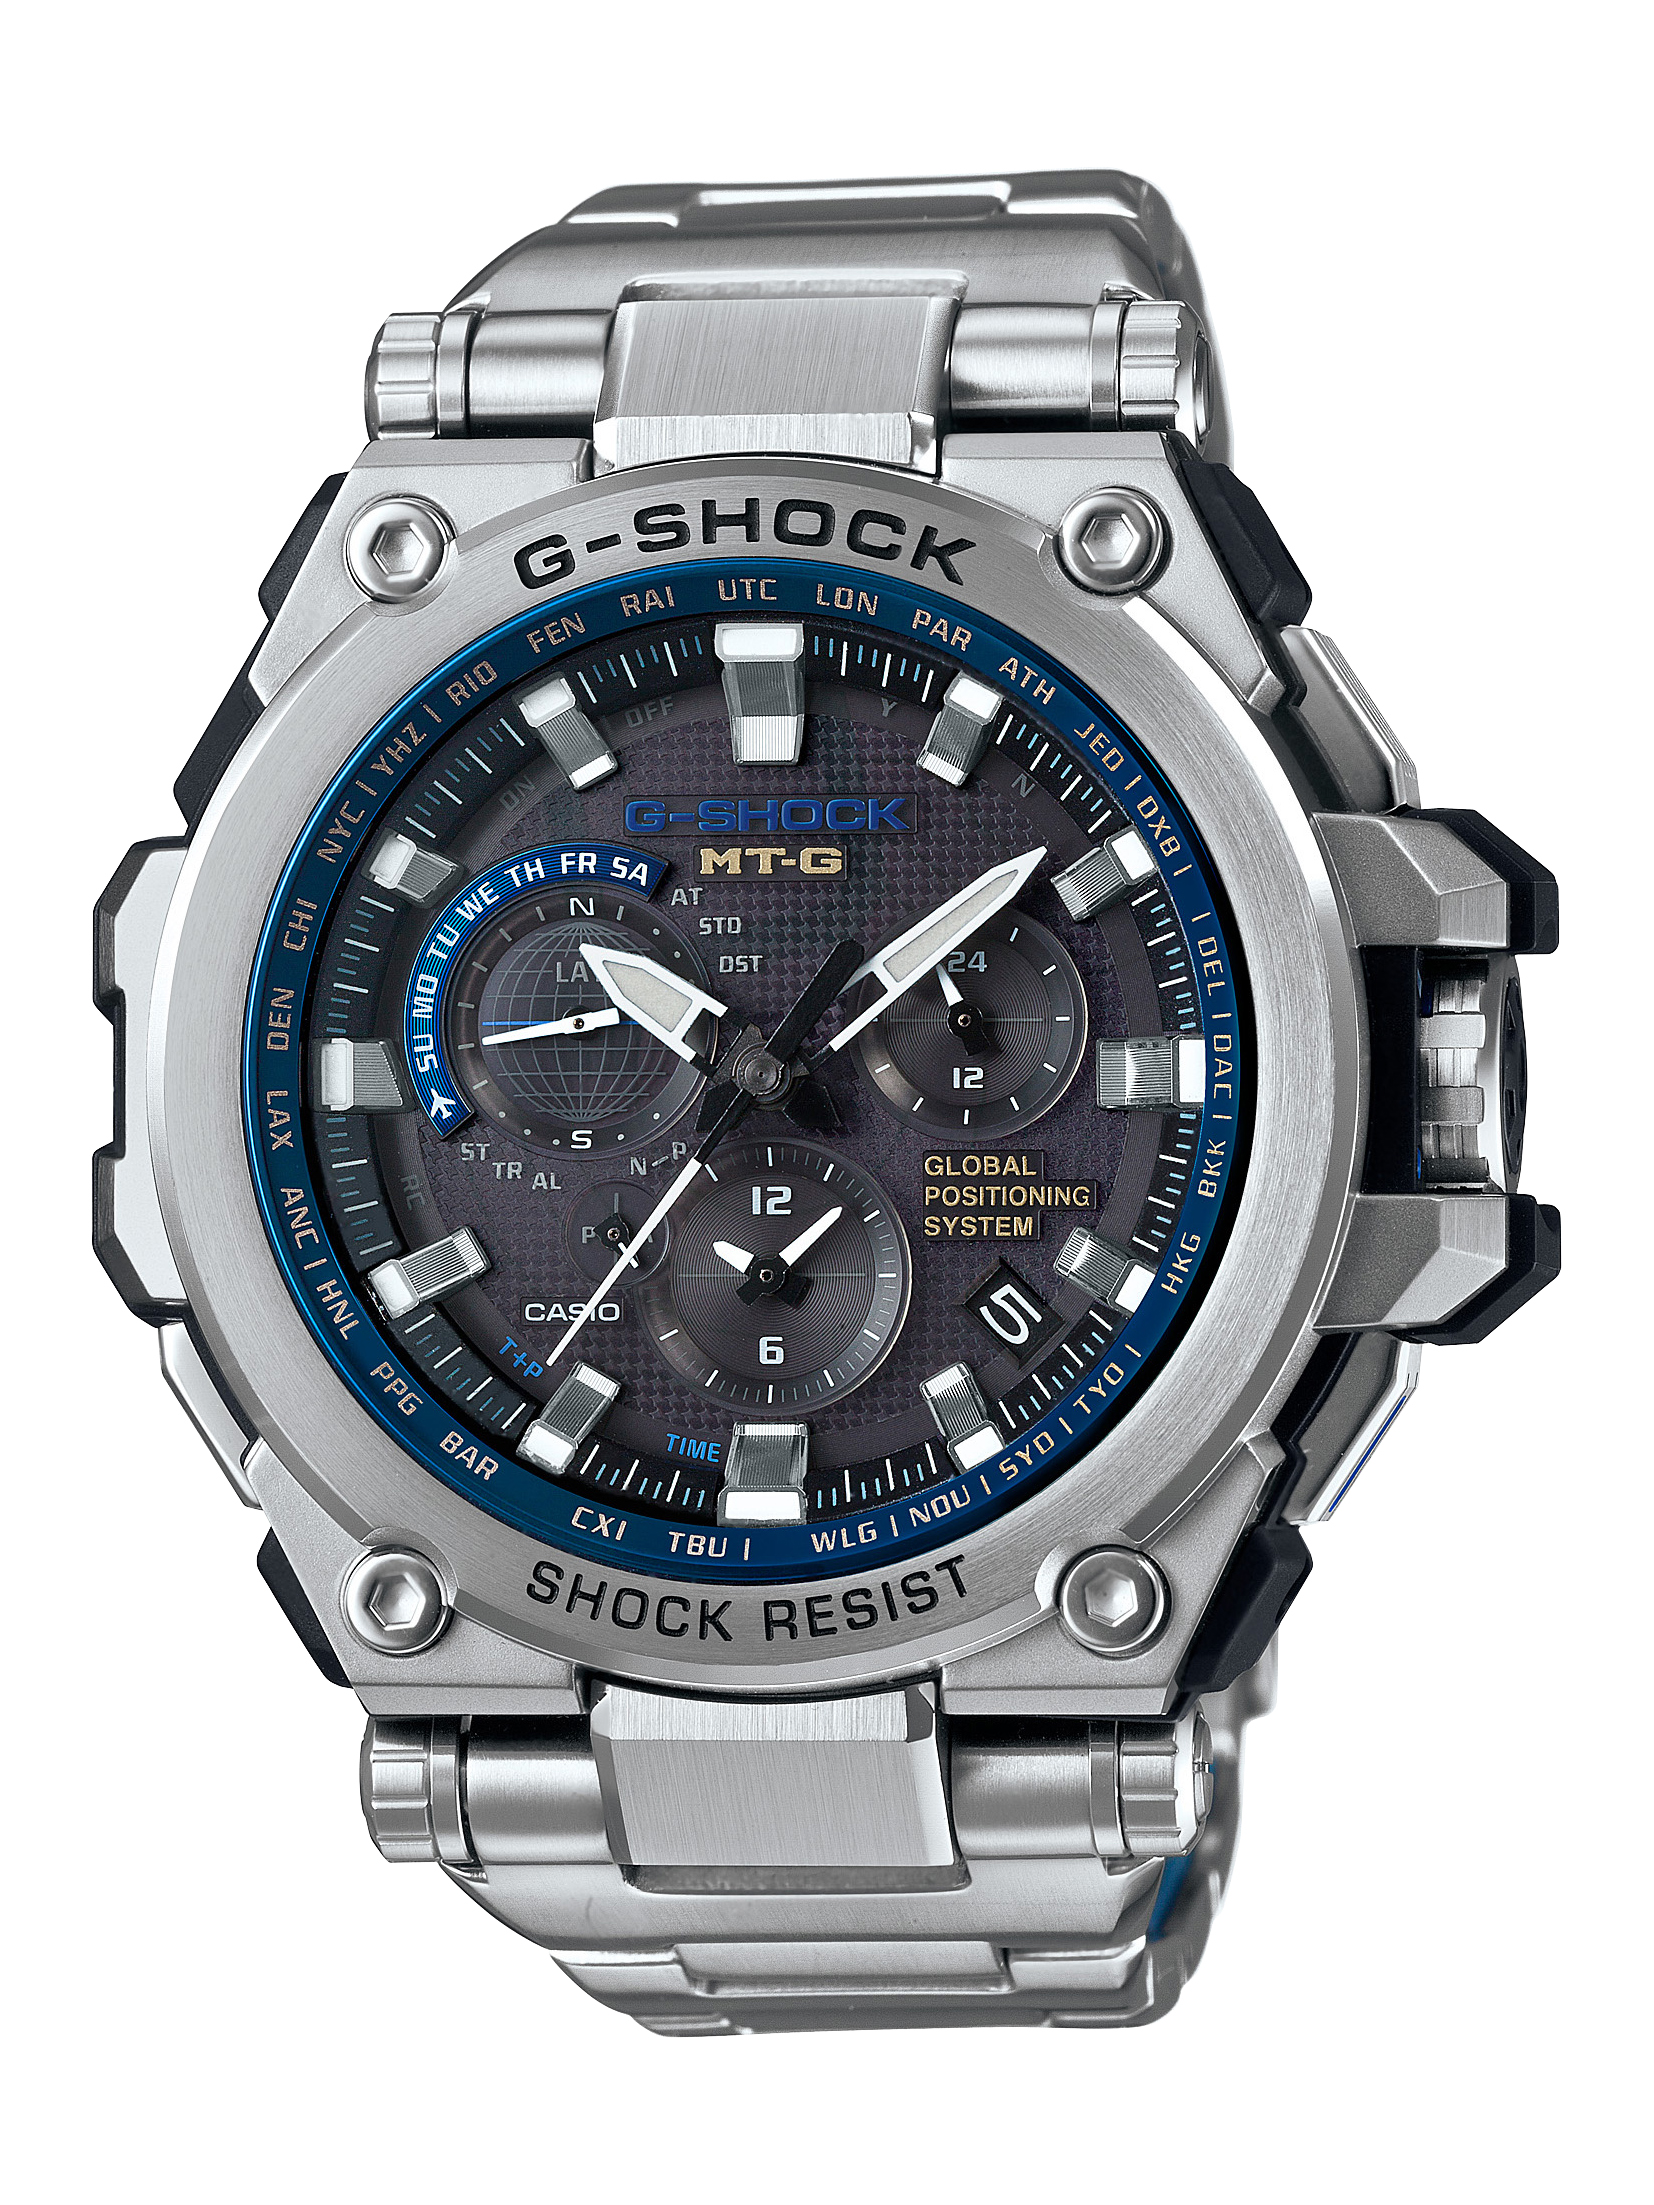 [Official] G-Shock MT-G with Built-In GPS Hybrid Wave Ceptor Time-Keeping System